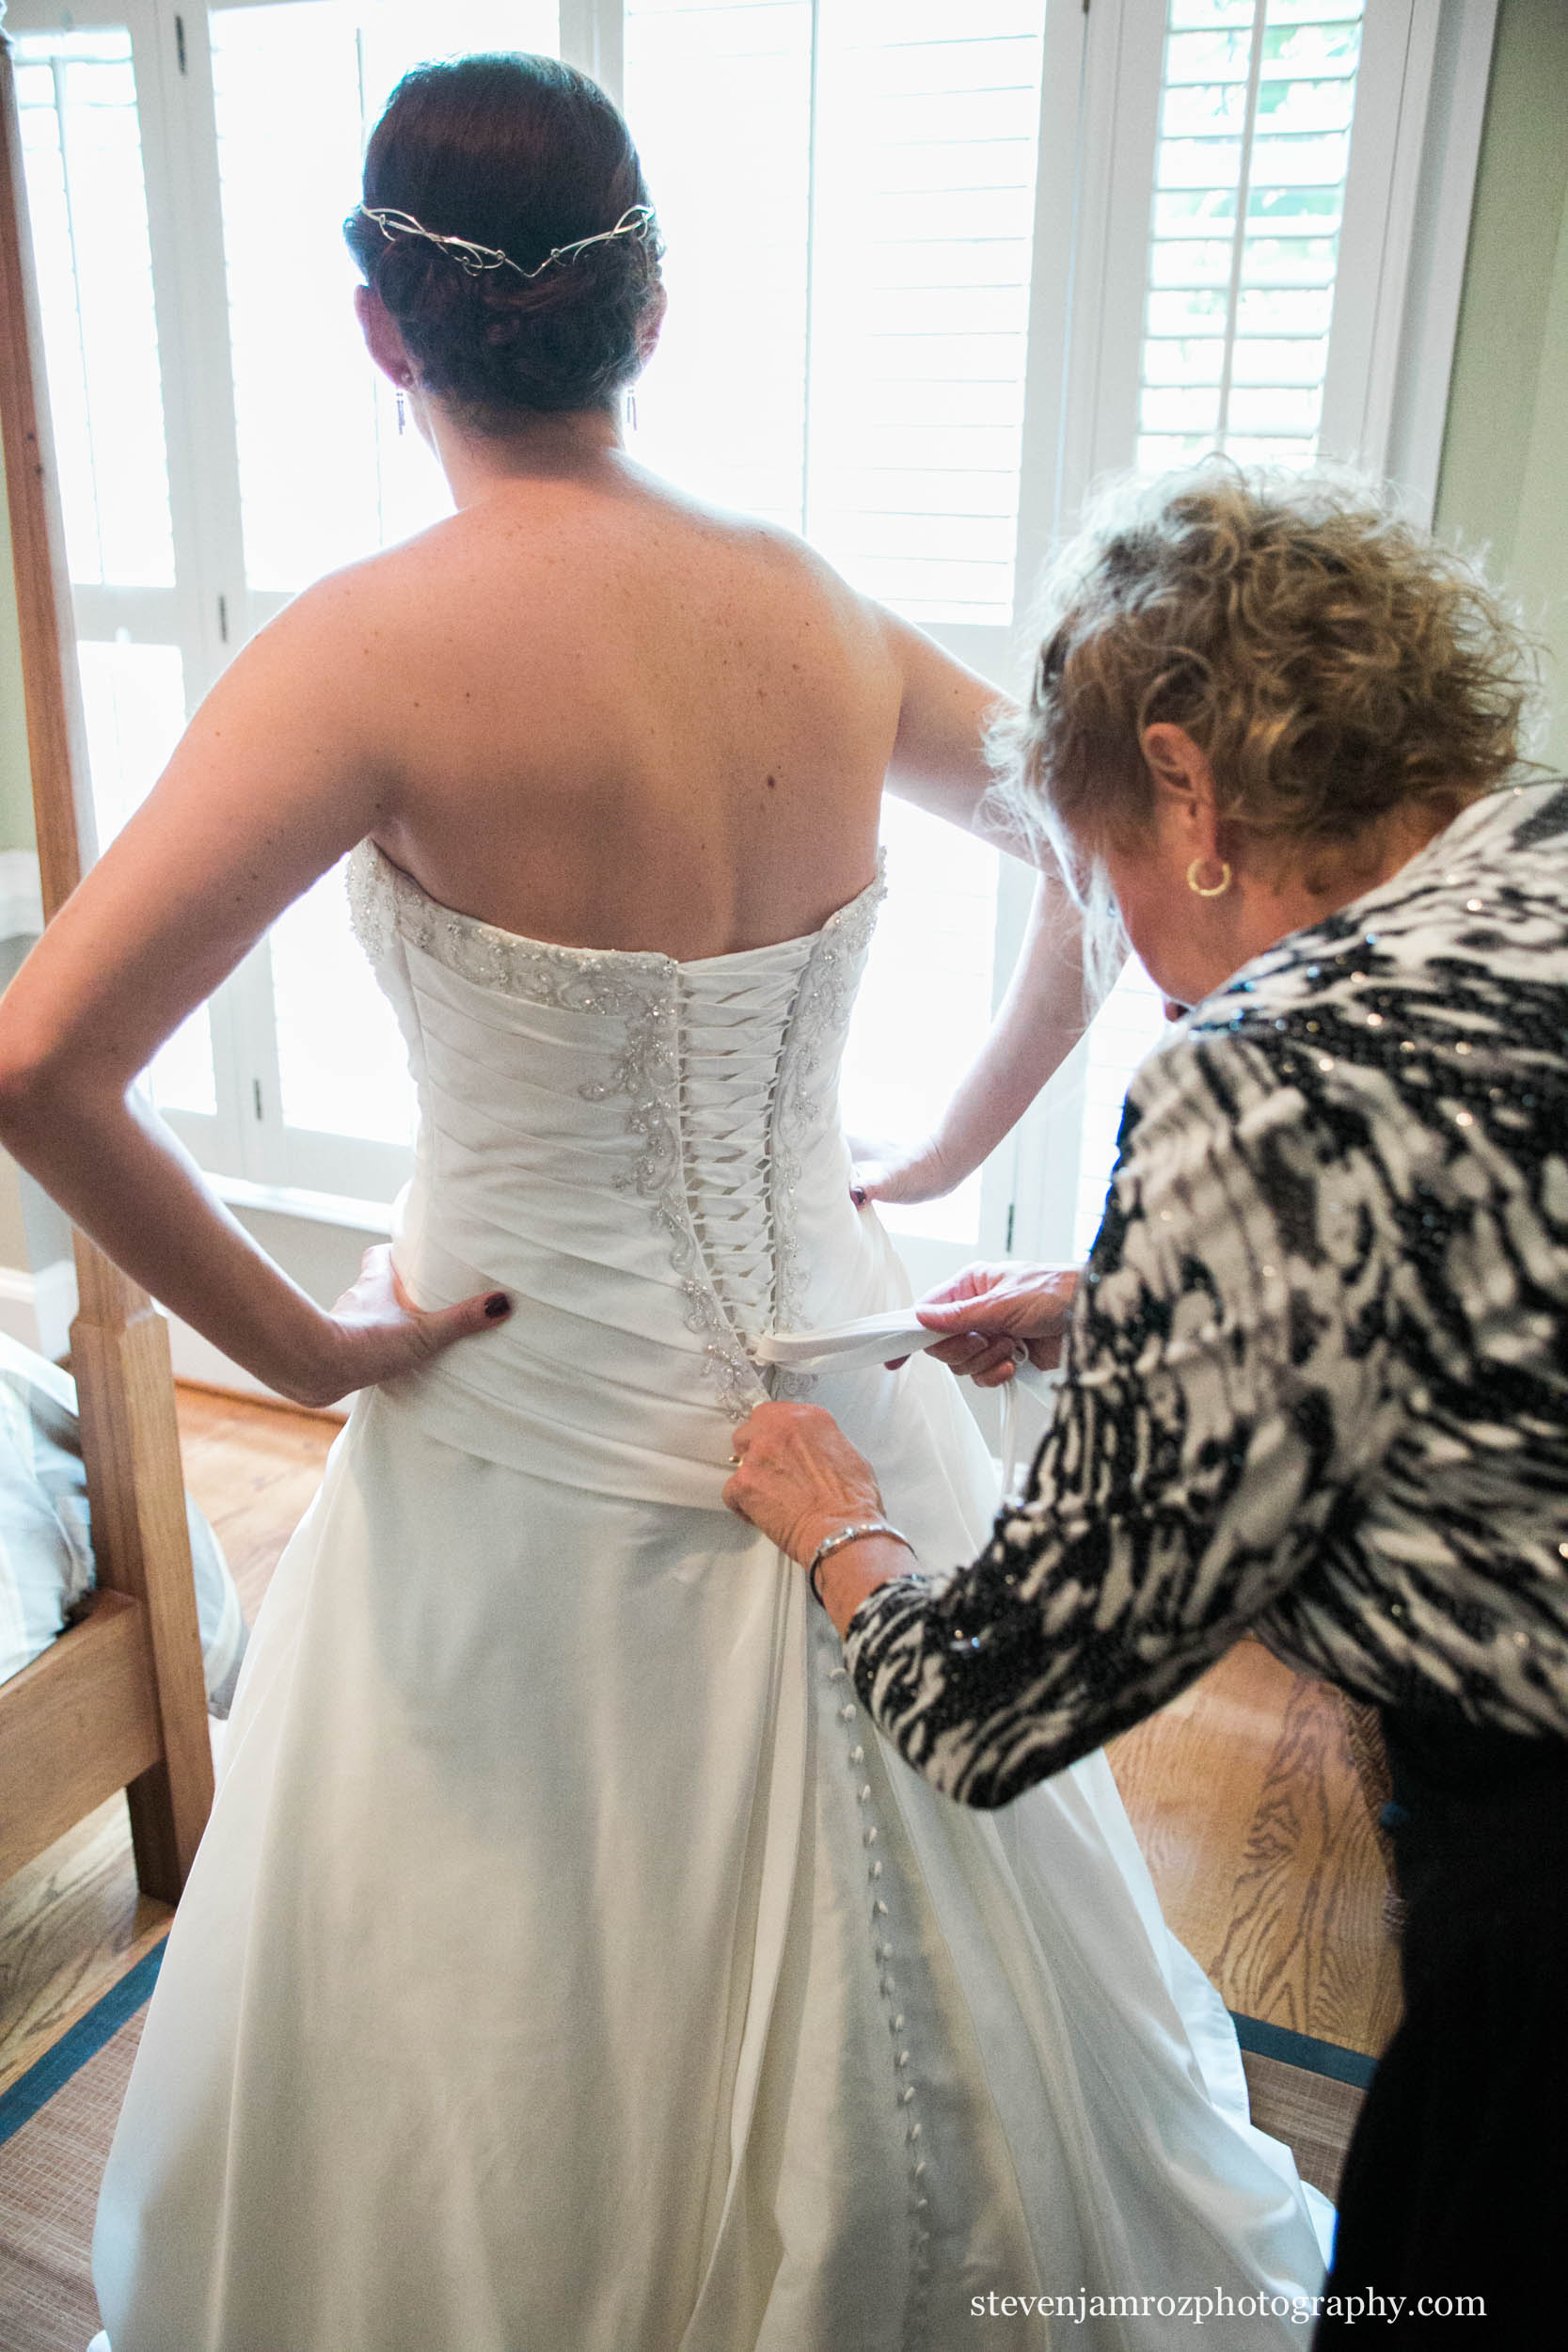 mom-laces-daughter-wedding-dress-raleigh-steven-jamroz-photography-0503.jpg